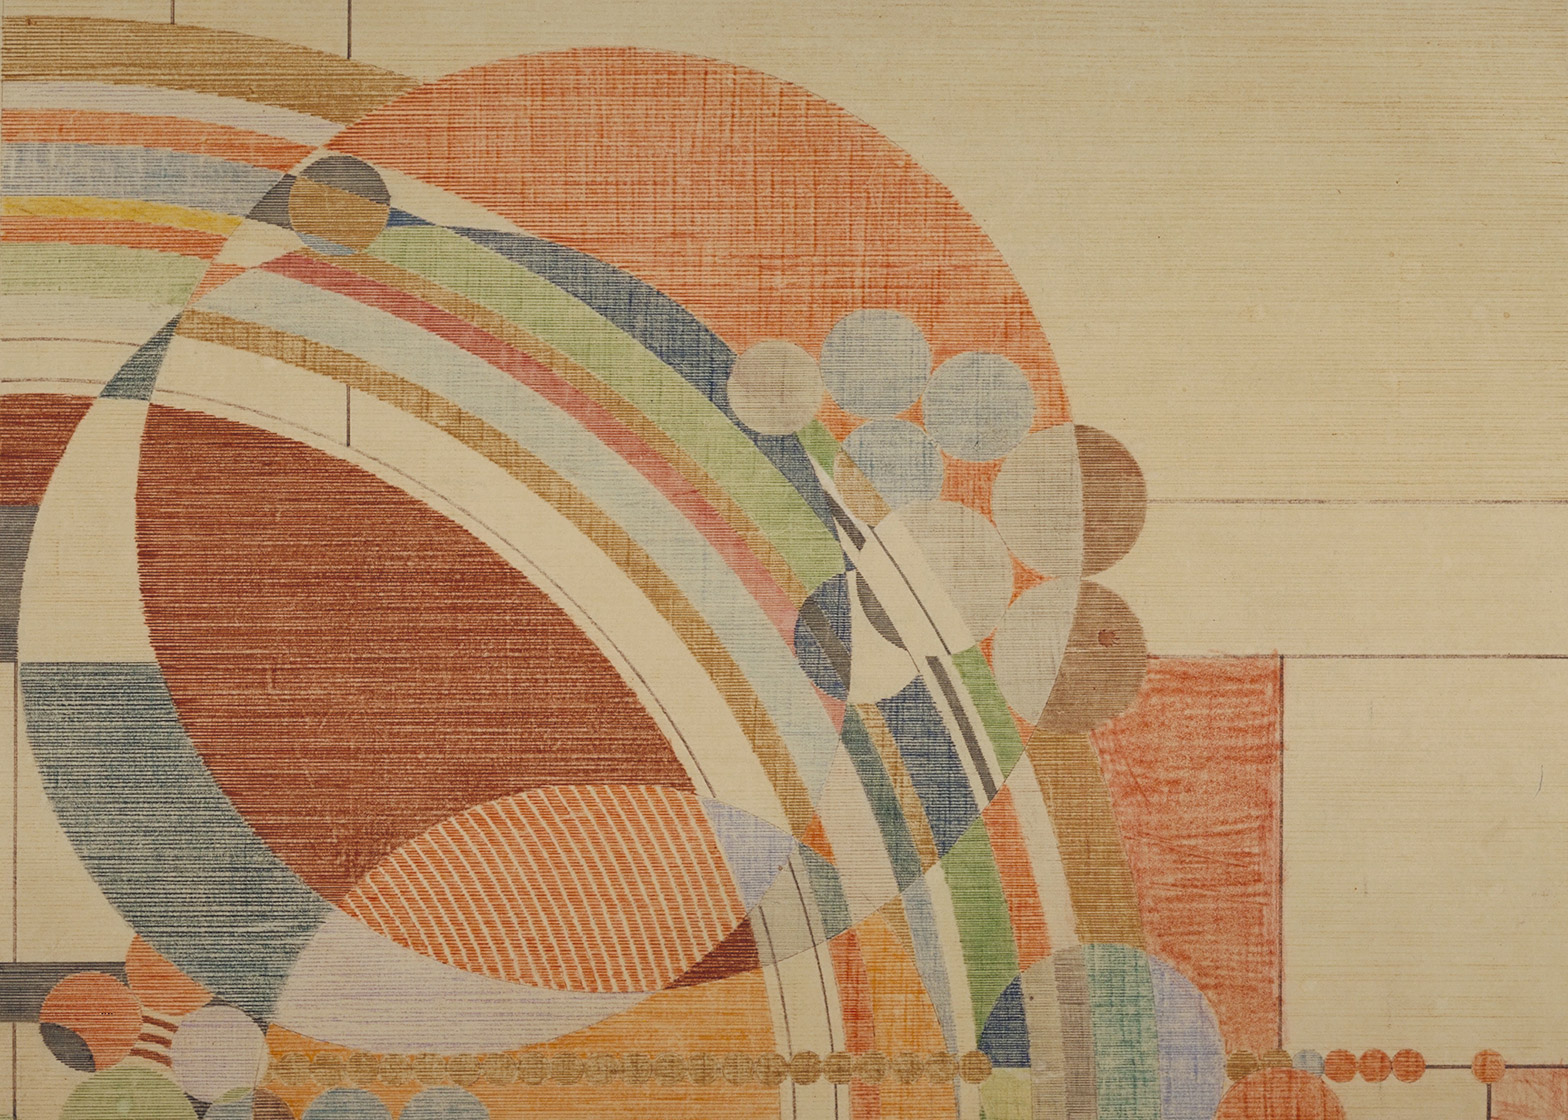 Frank Lloyd Wright at 150: Unpacking the Archive exhibition at the Museum of Modern Art, MoMa in New York City, USA